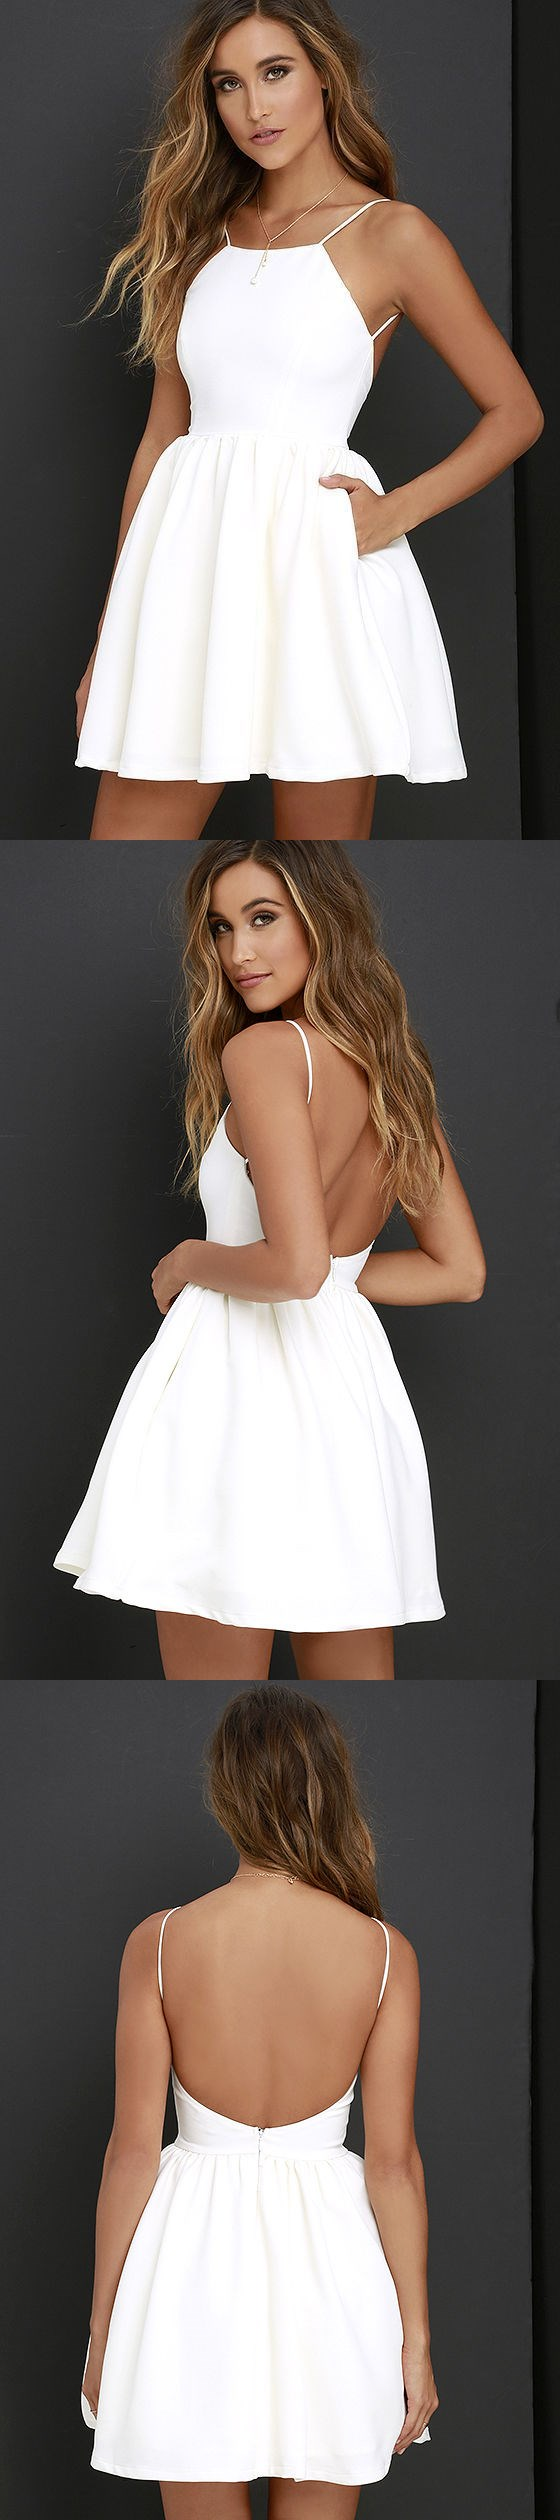 Large Of Simple White Dress